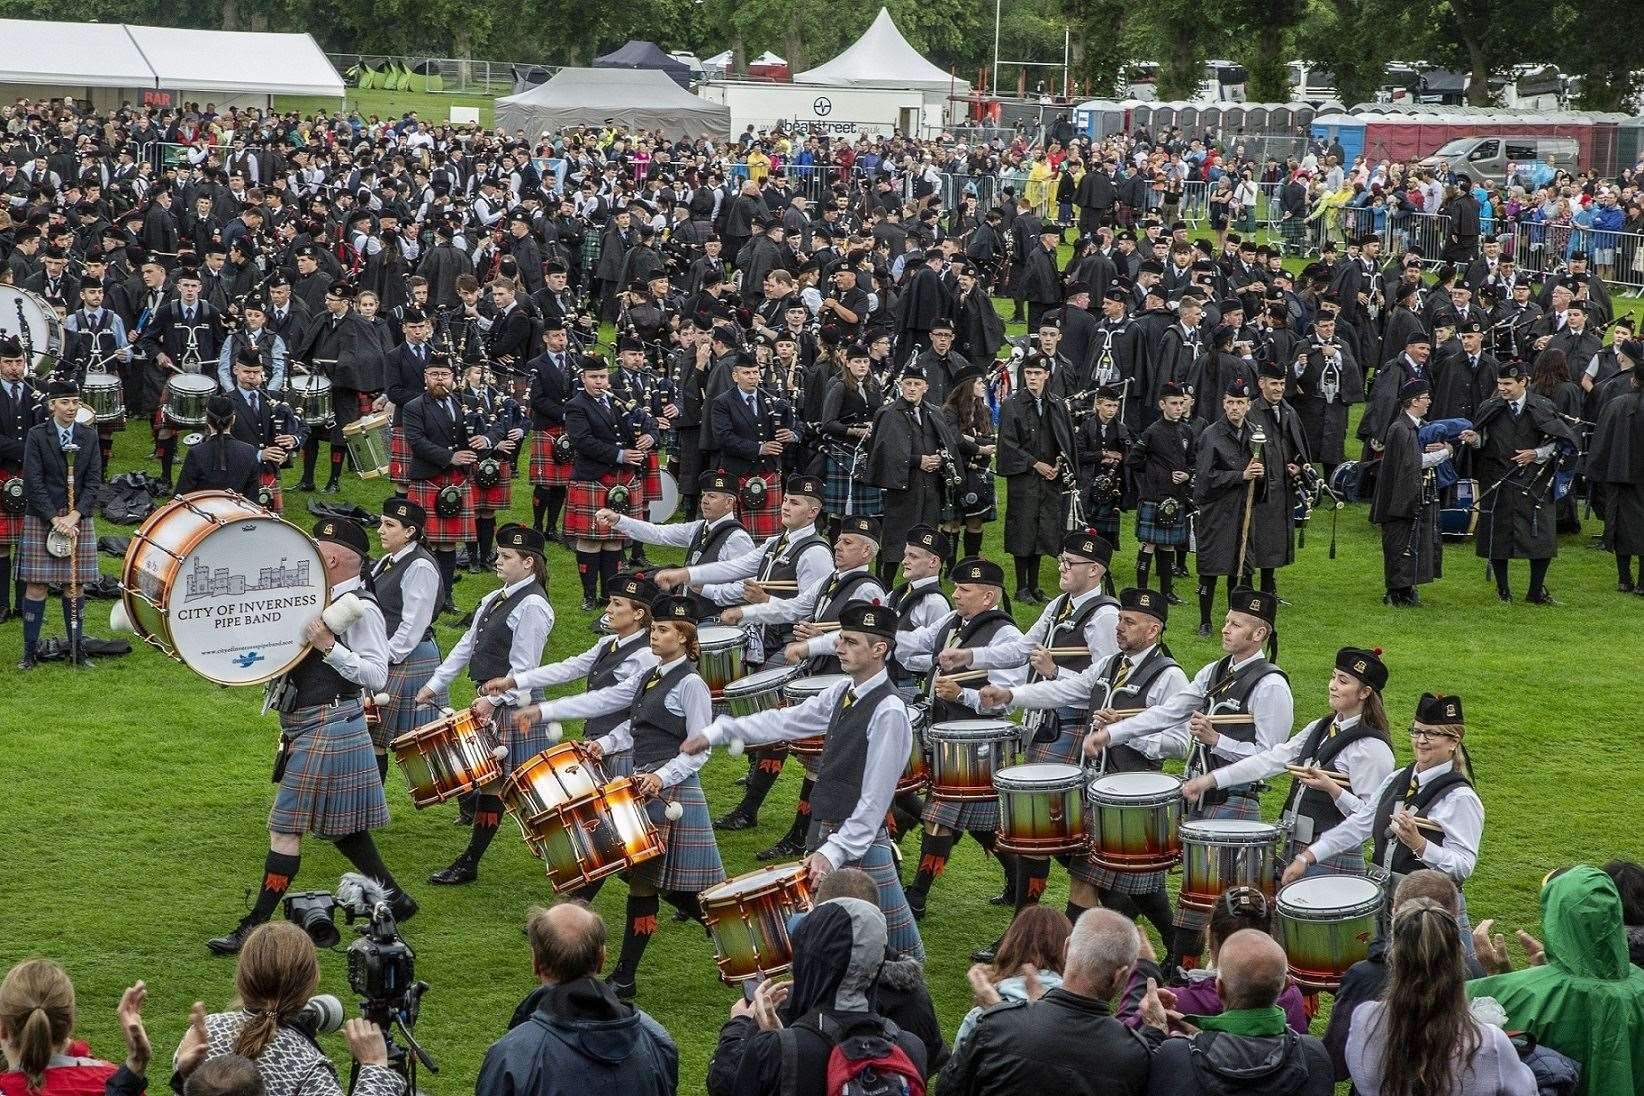 Pipe Bands will not be heard at Bught Park this summer.